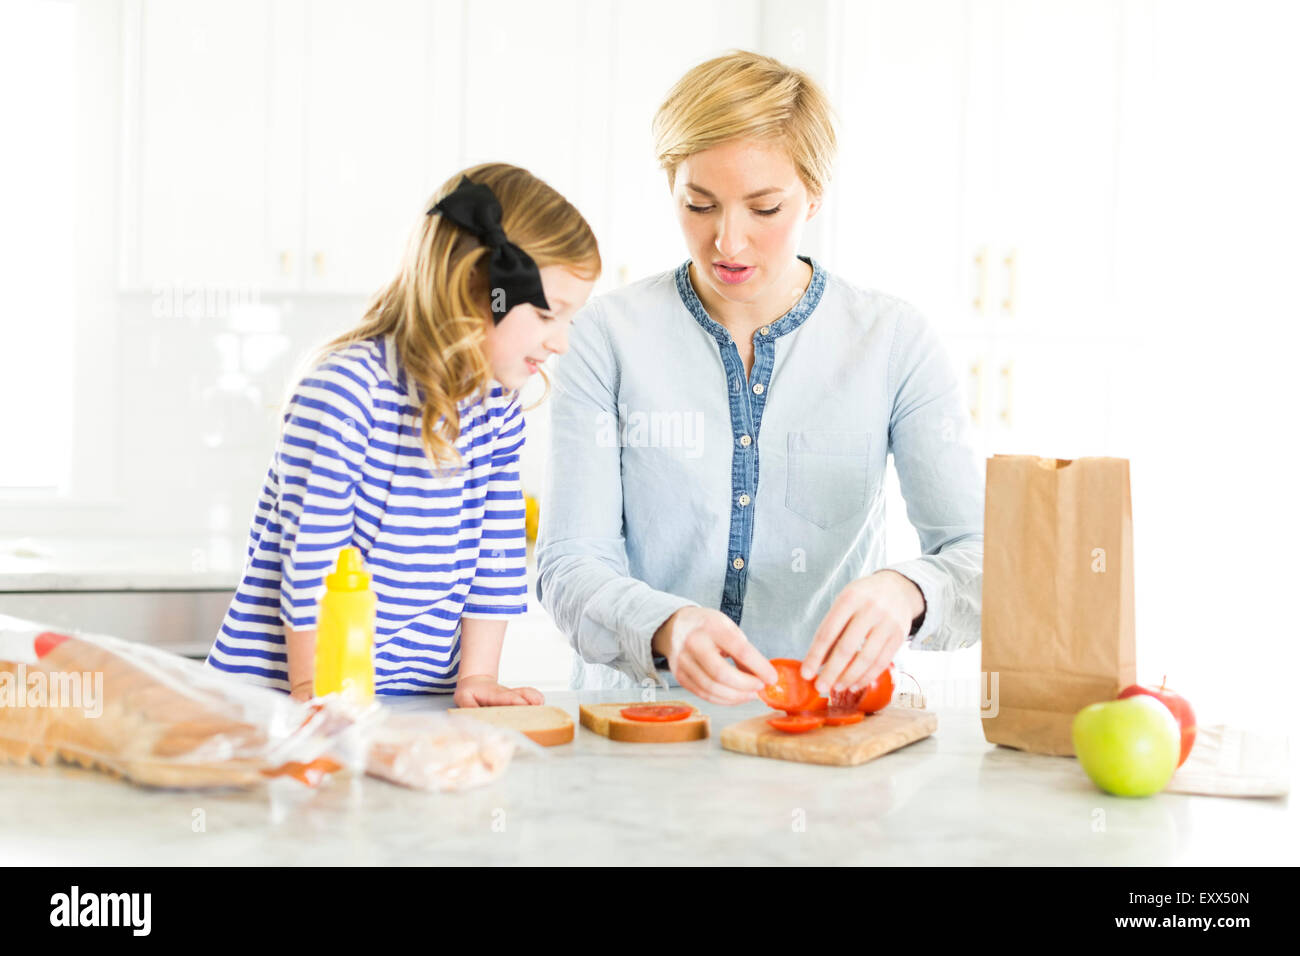 Mother making sandwiches for her daughter (4-5) - Stock Image